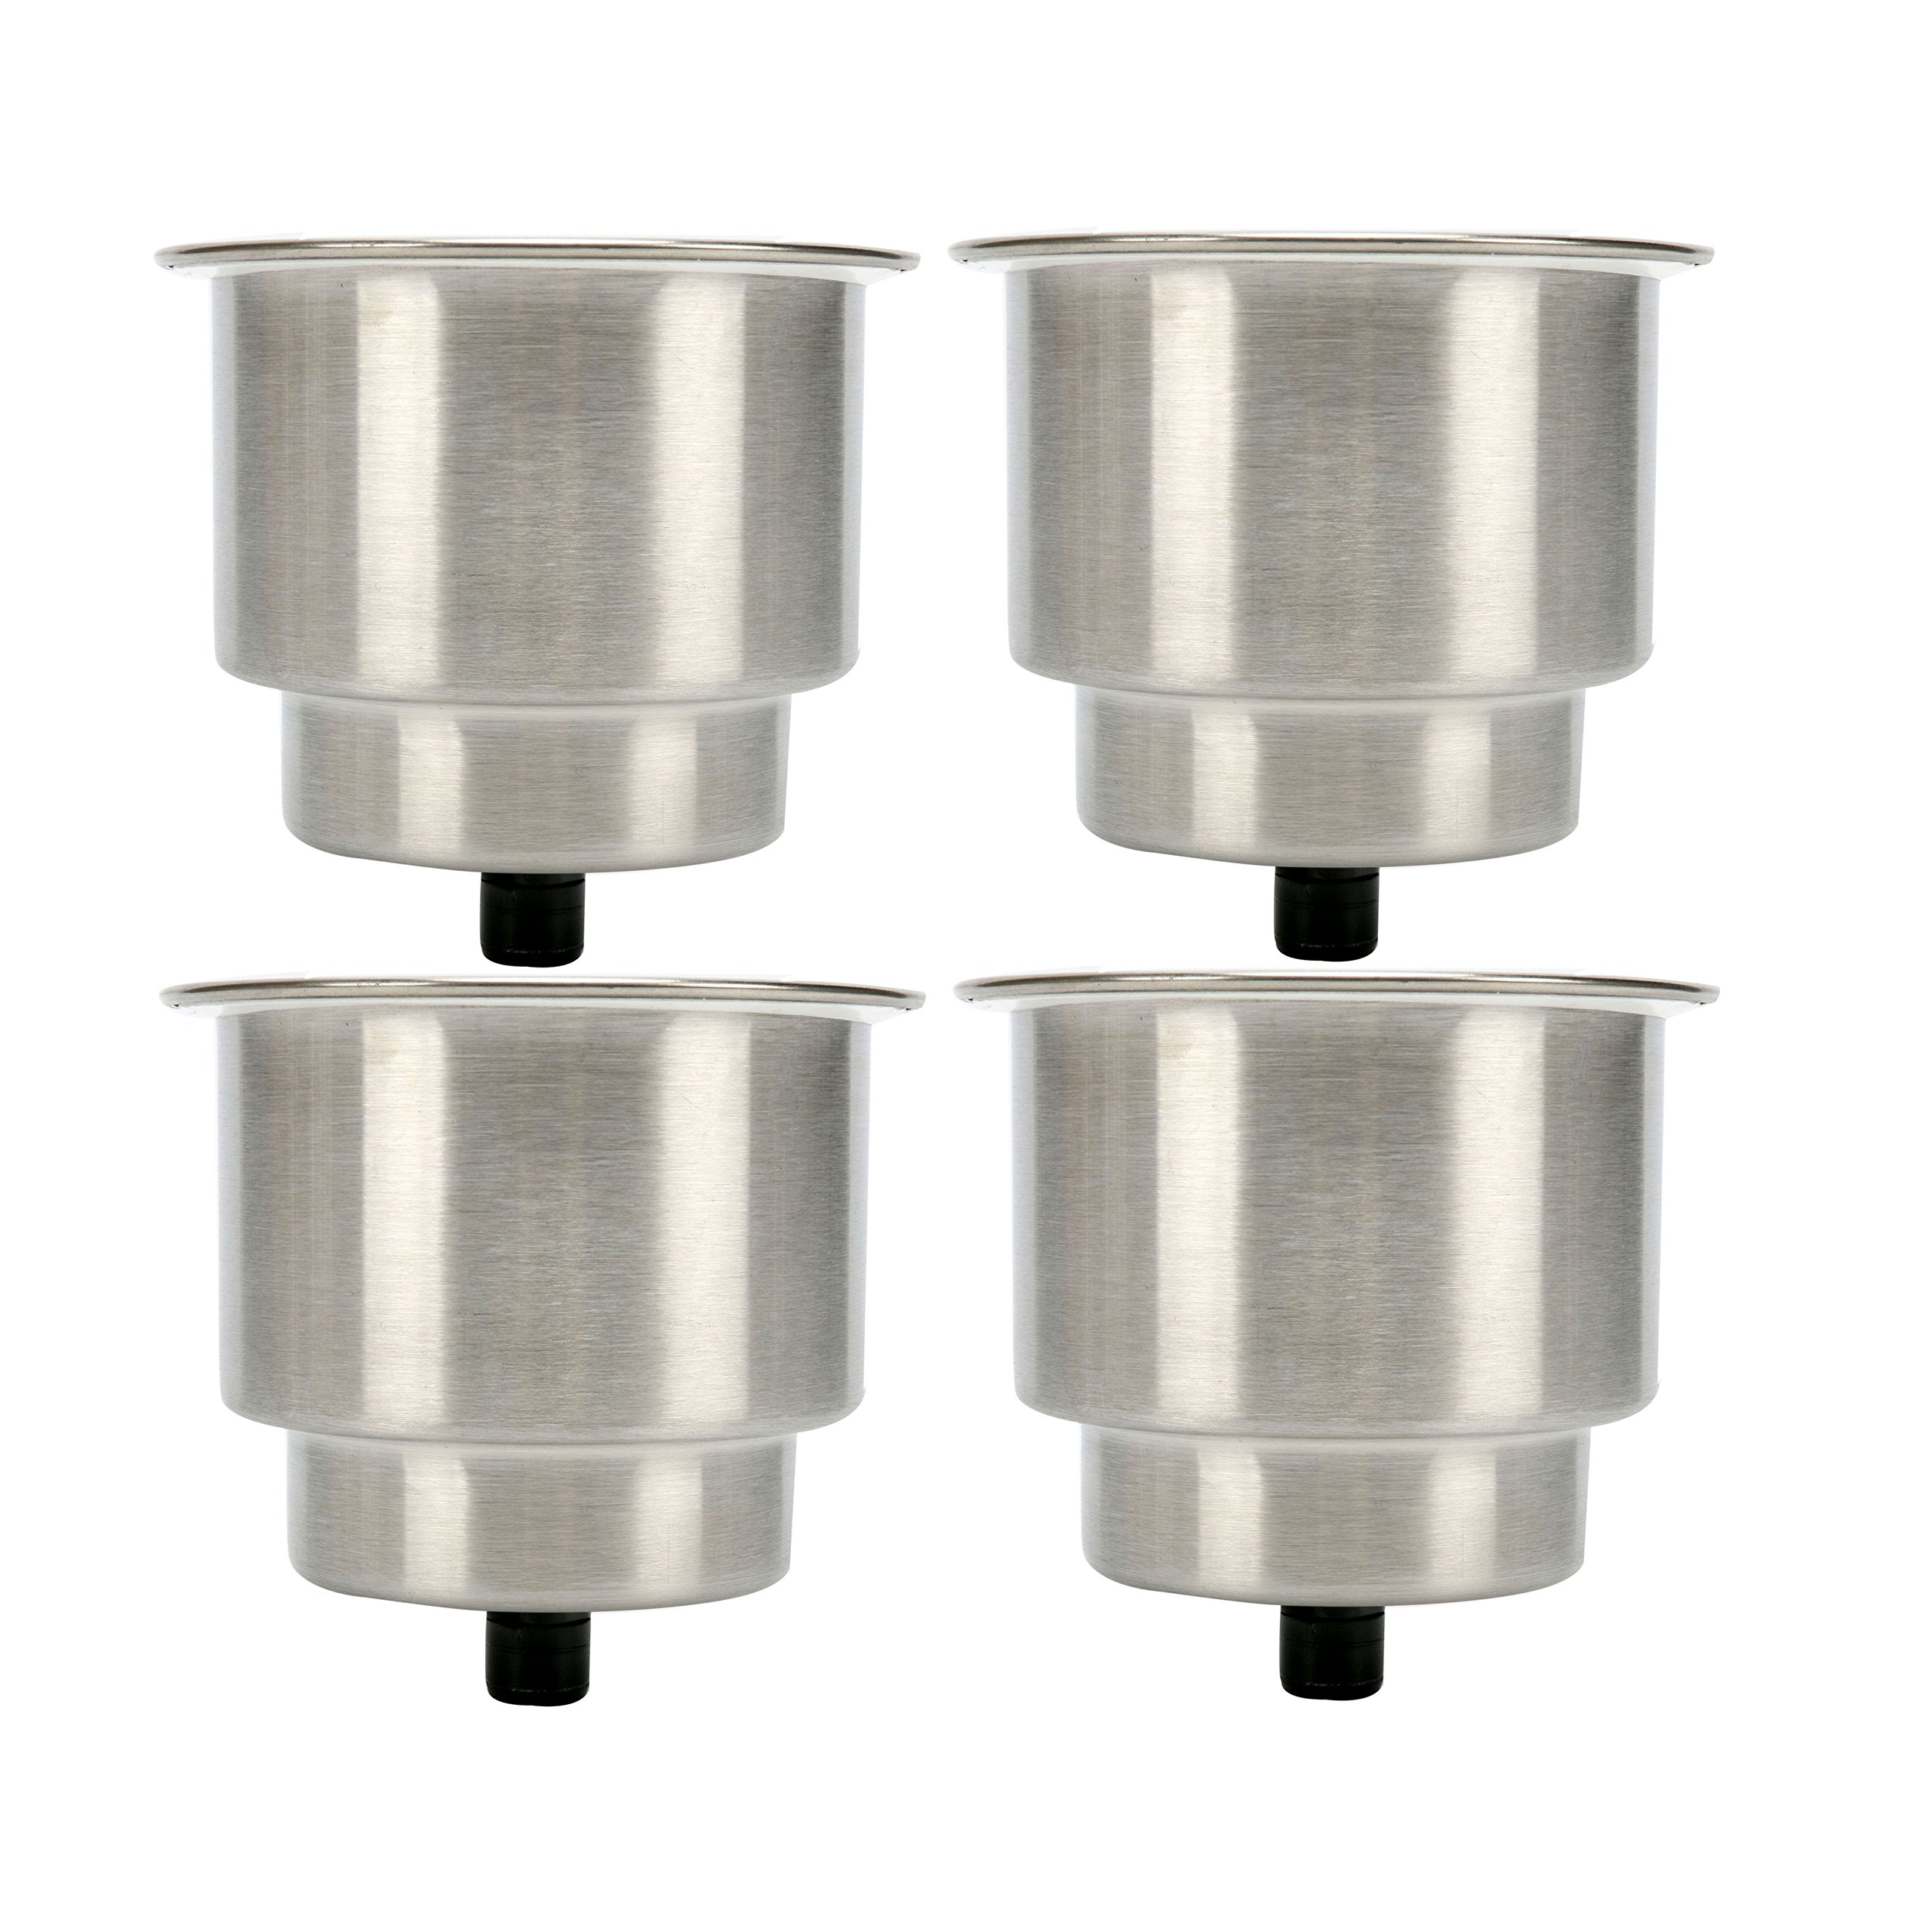 cdf212996 SeaLux 4pcs Stainless Steel Cup Drink Holder with Drain for Marine Boat RV  Camper